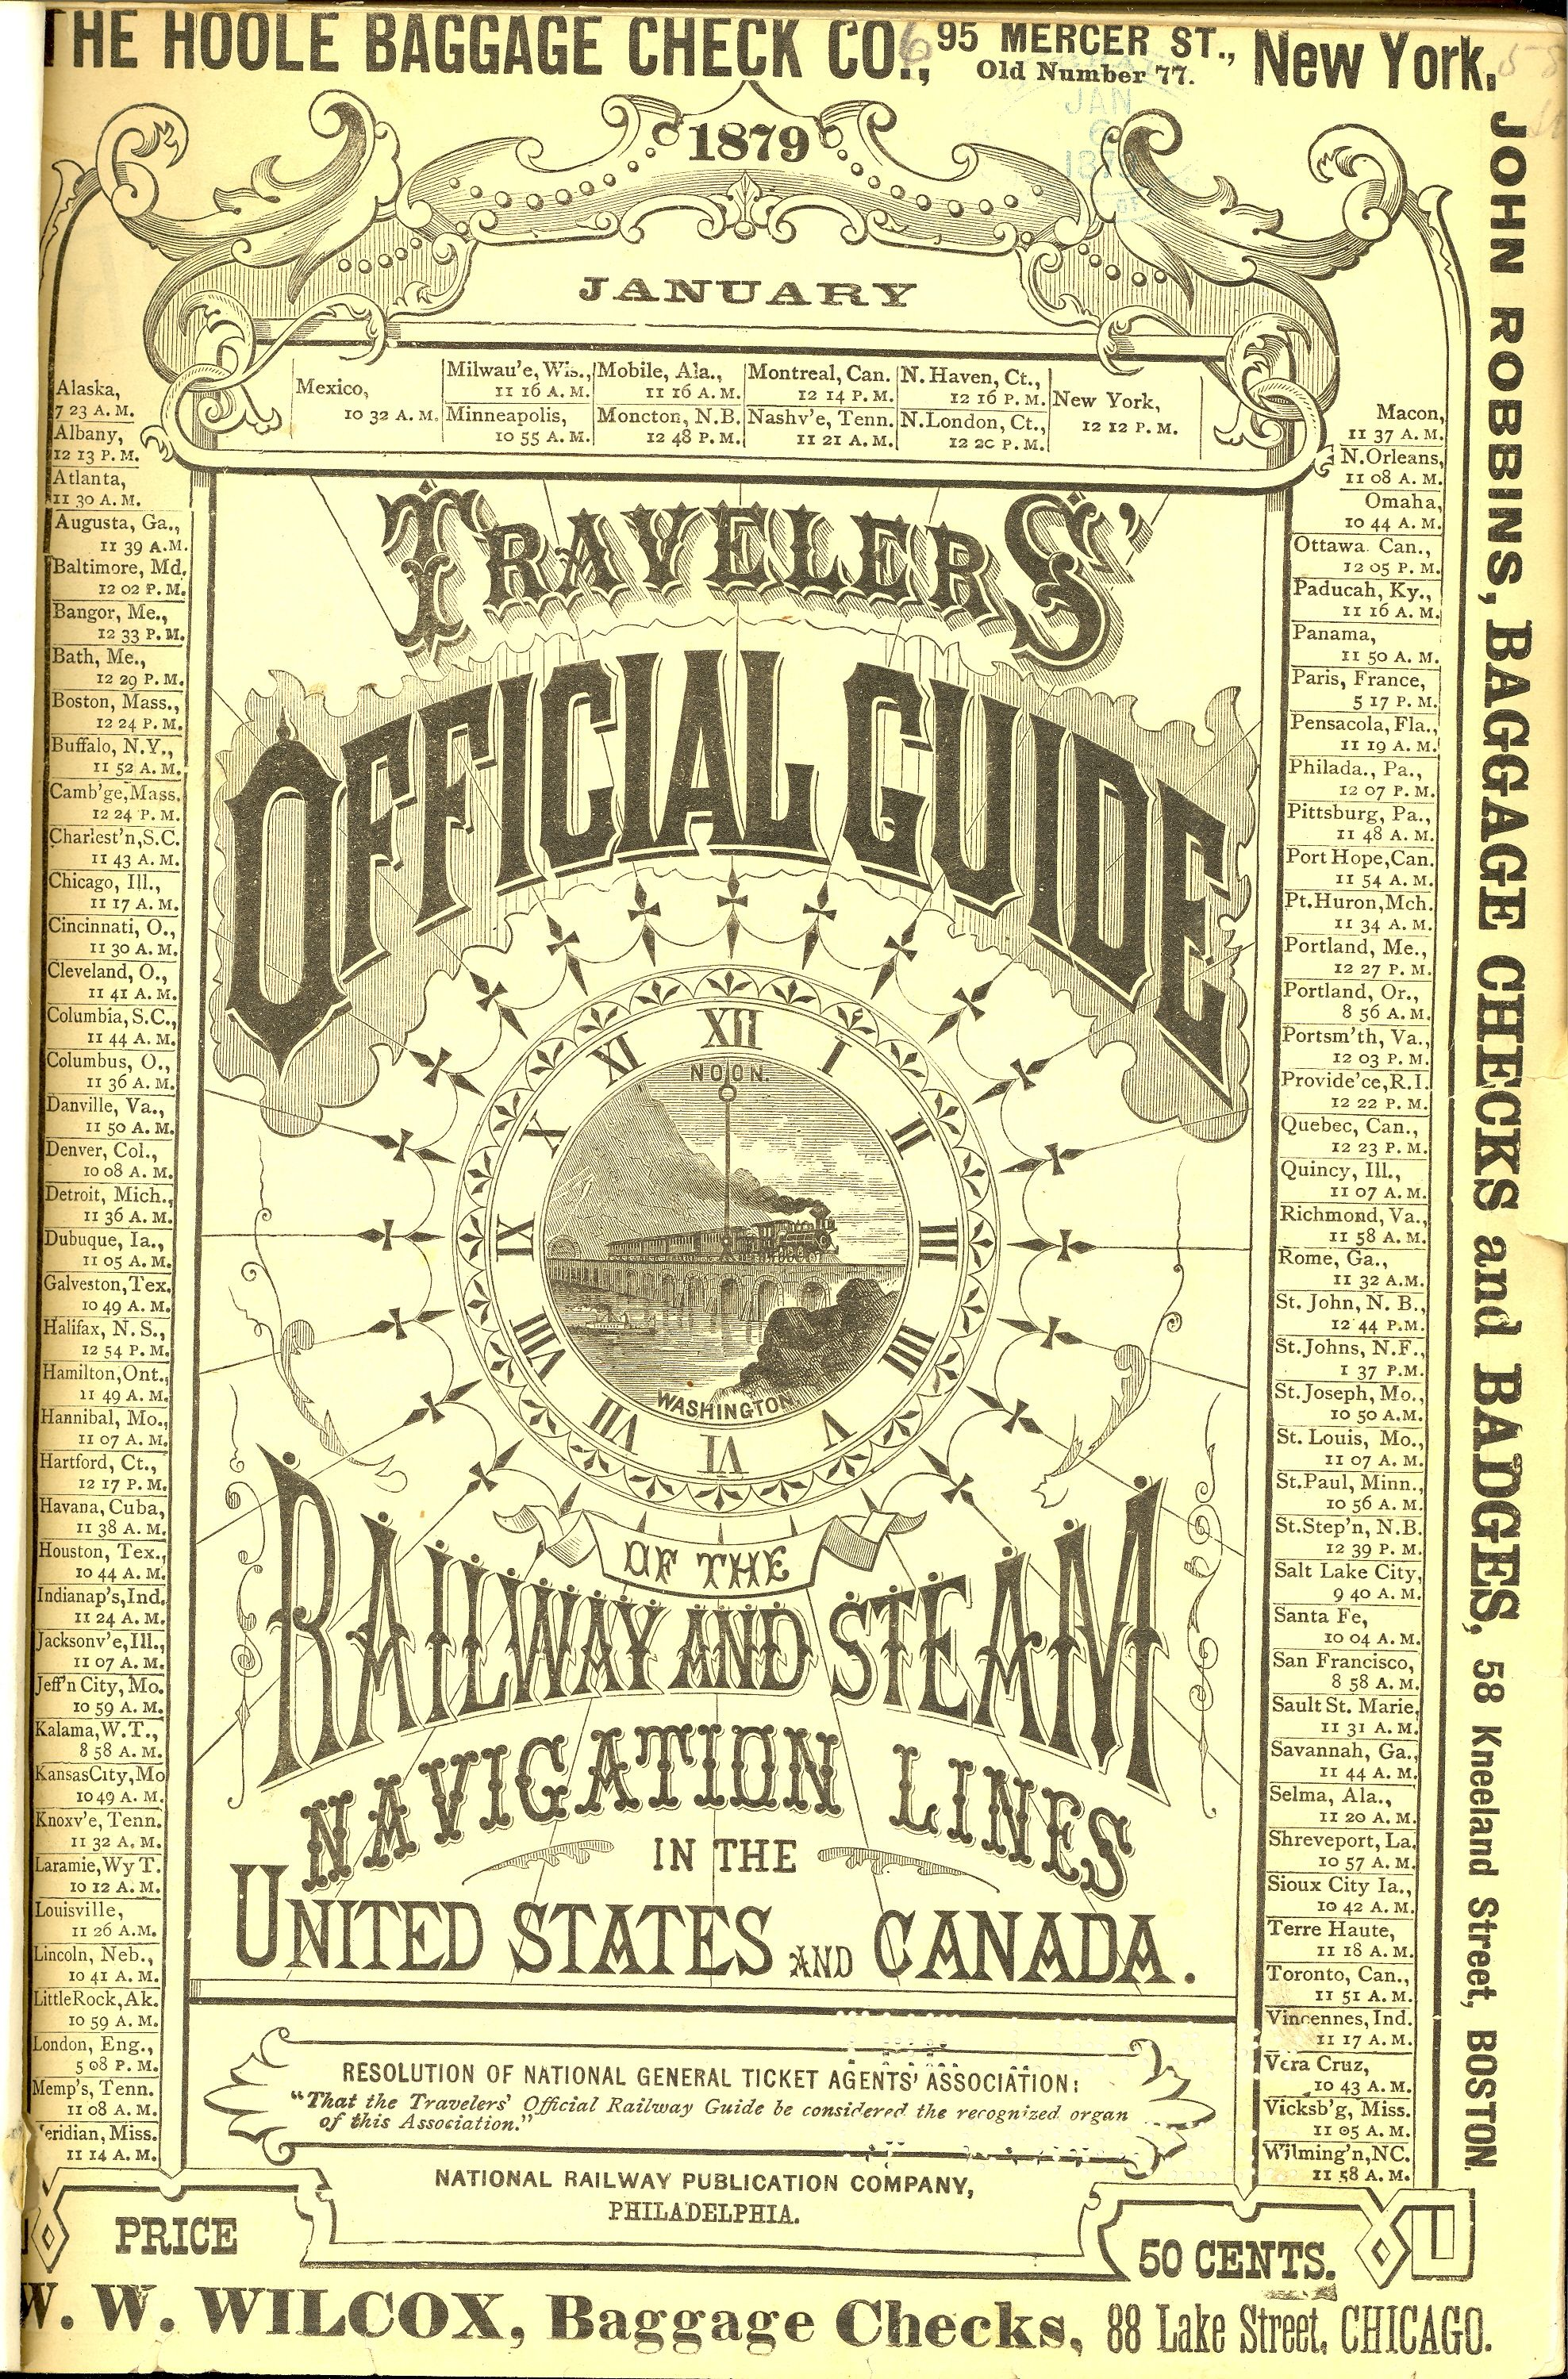 Official Railway Guide 1879